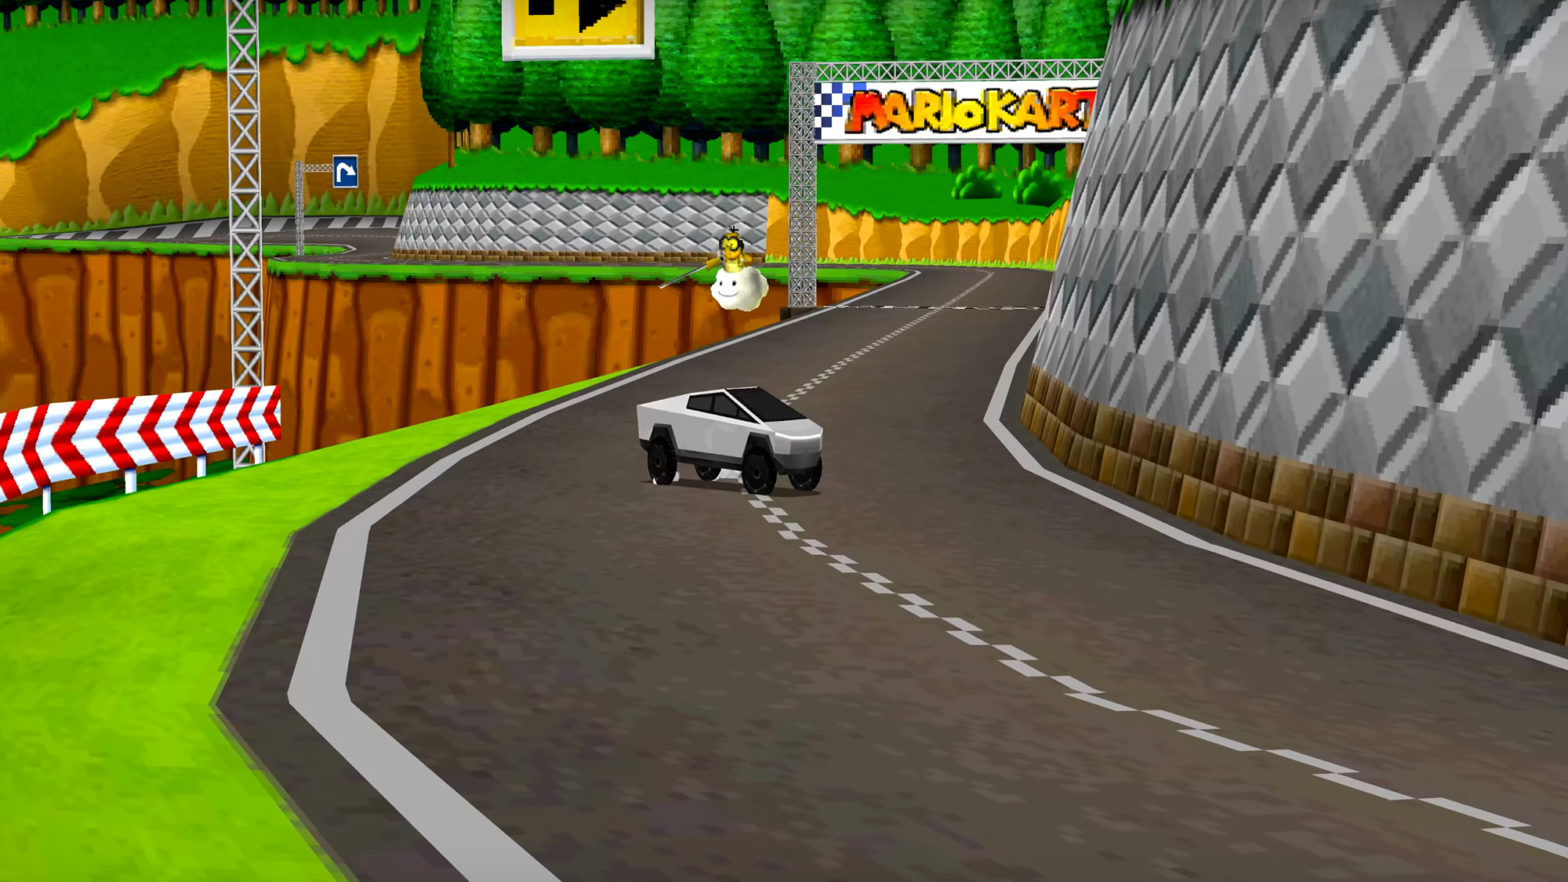 Tesla Cybertruck in Mario Kart DS